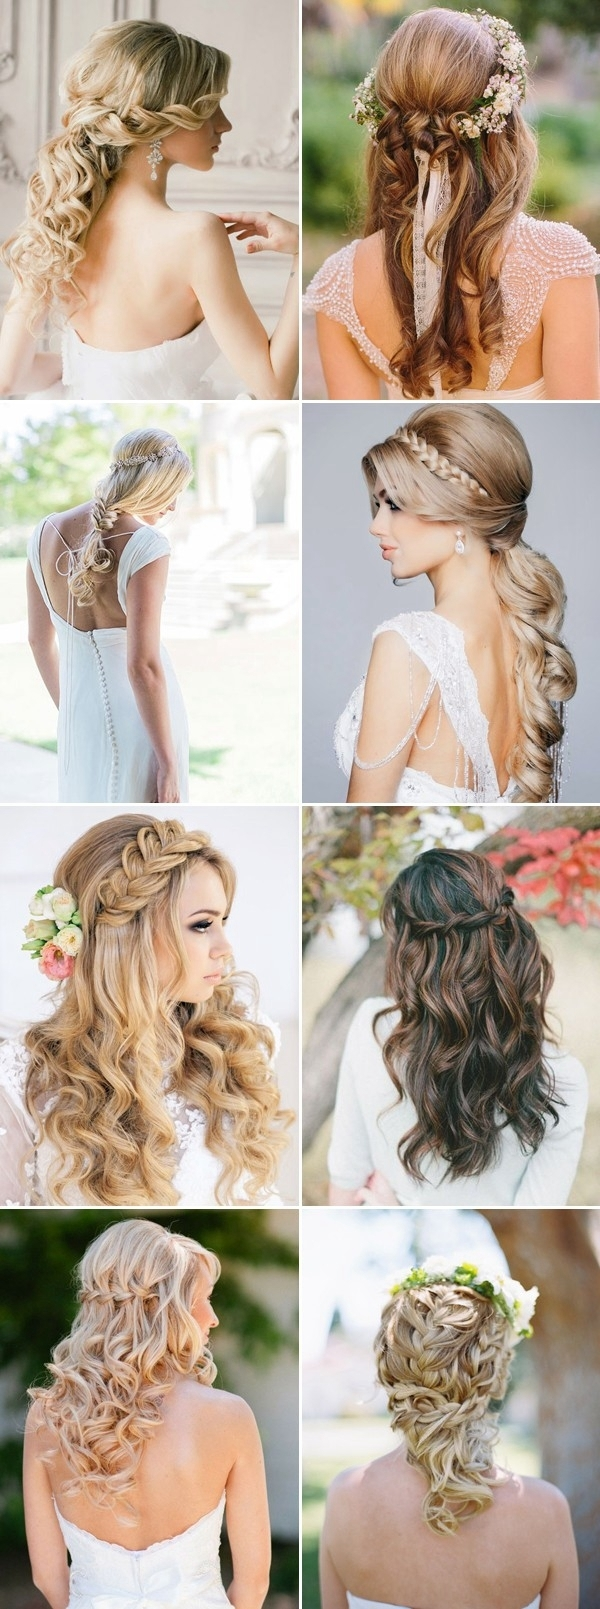 Fashionable Half Up With Veil Wedding Hairstyles Inside 100+ Romantic Long Wedding Hairstyles 2018 – Curls, Half Up, Updos (View 4 of 15)